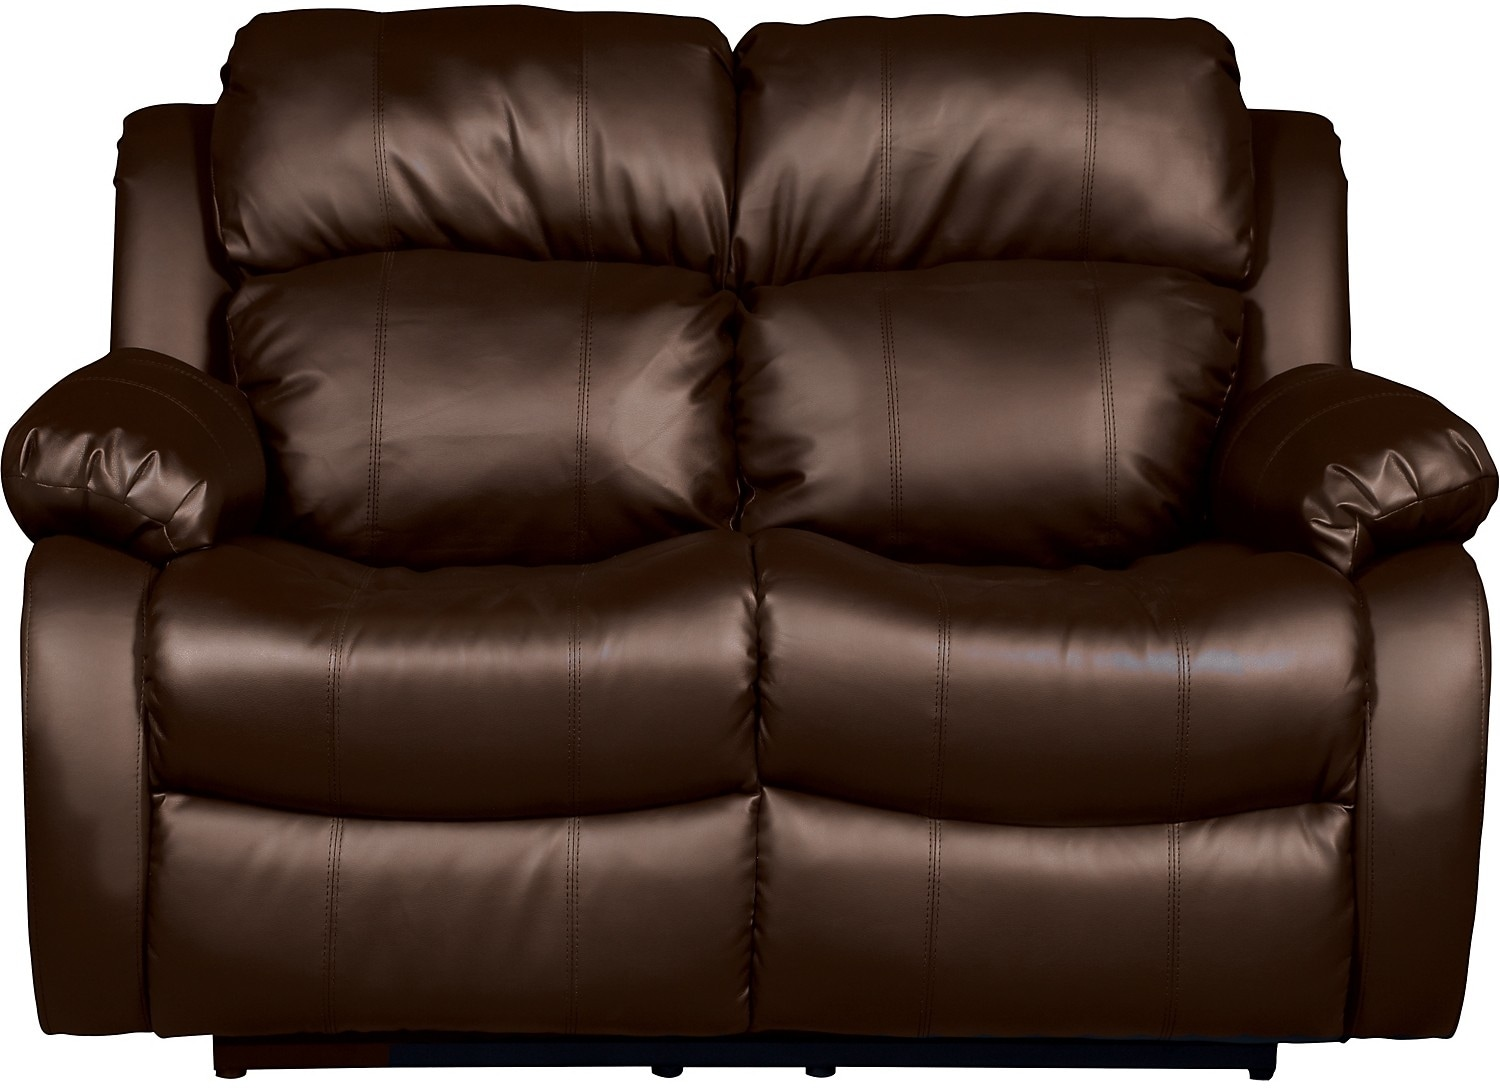 Omega 2 Bonded Leather Reclining Loveseat – Brown